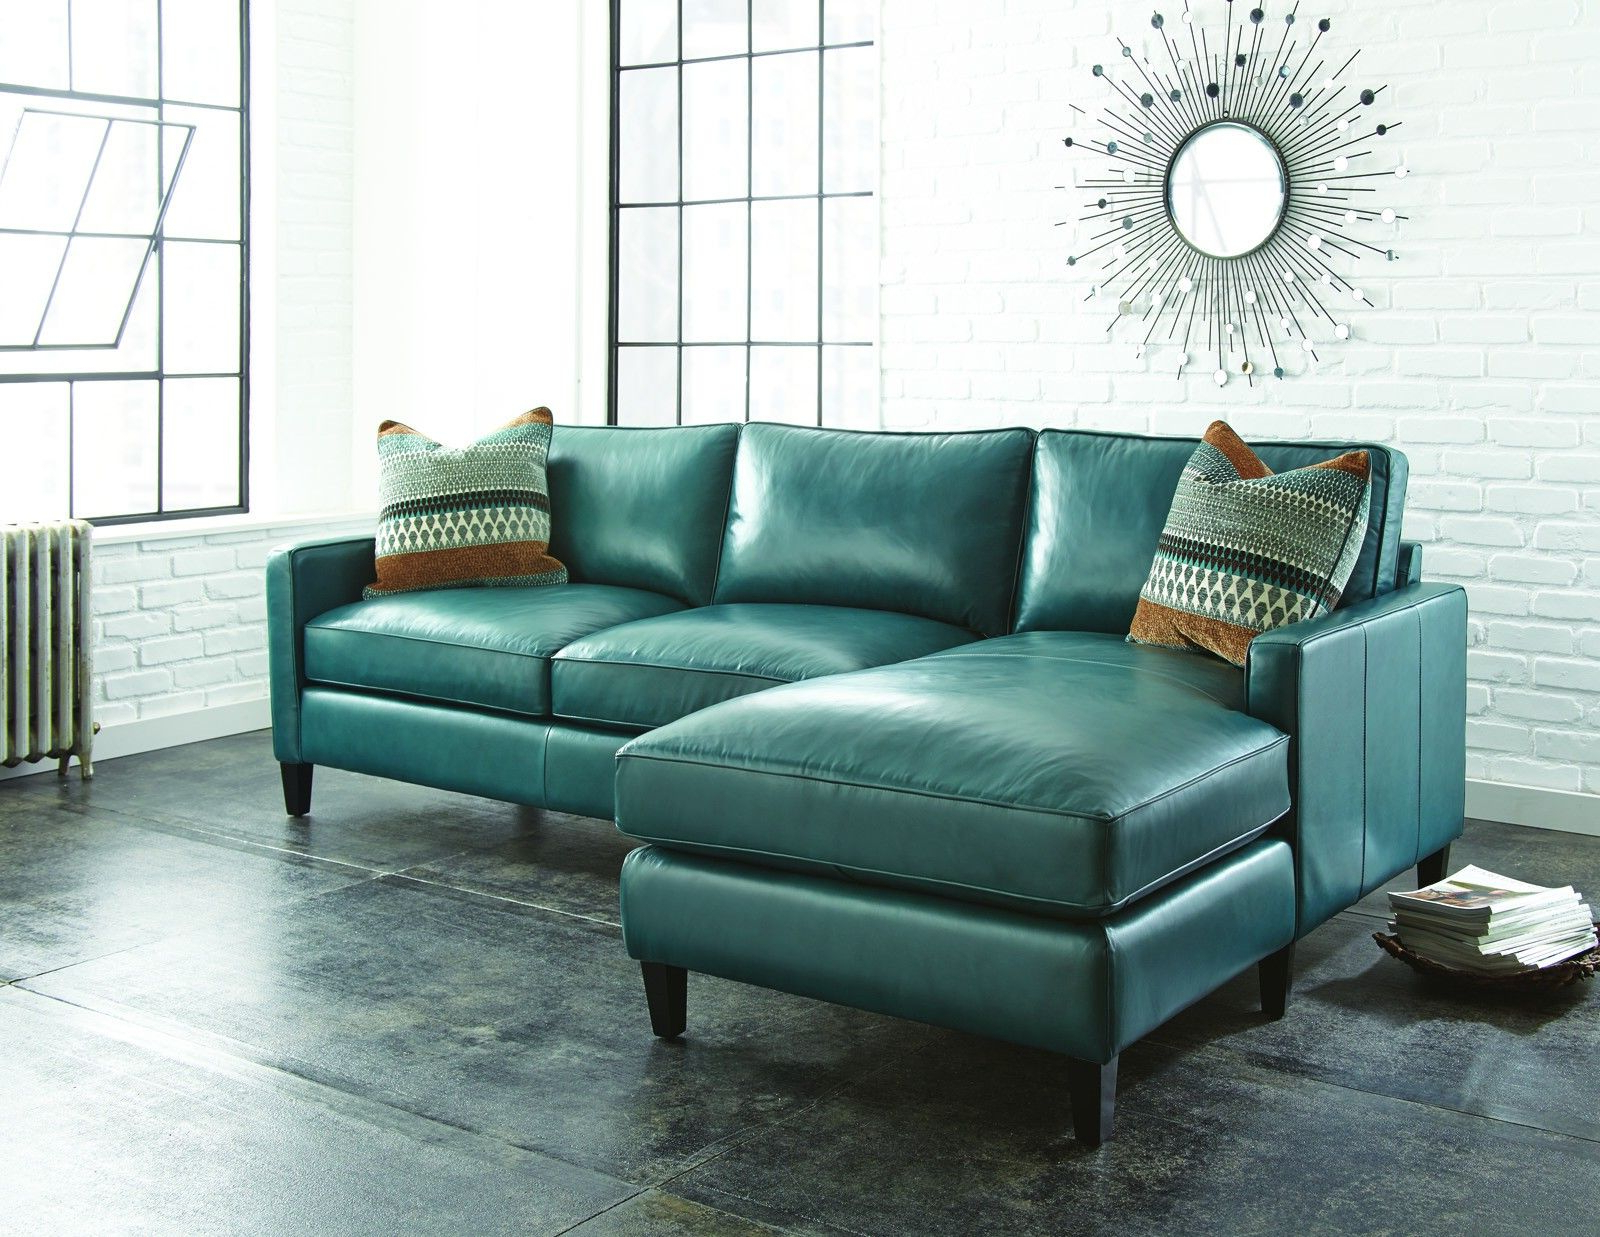 Gina Blue Leather Sofa Chairs In Best And Newest How To Reupholster Leather Furniture In 5 Easy Steps (View 11 of 20)